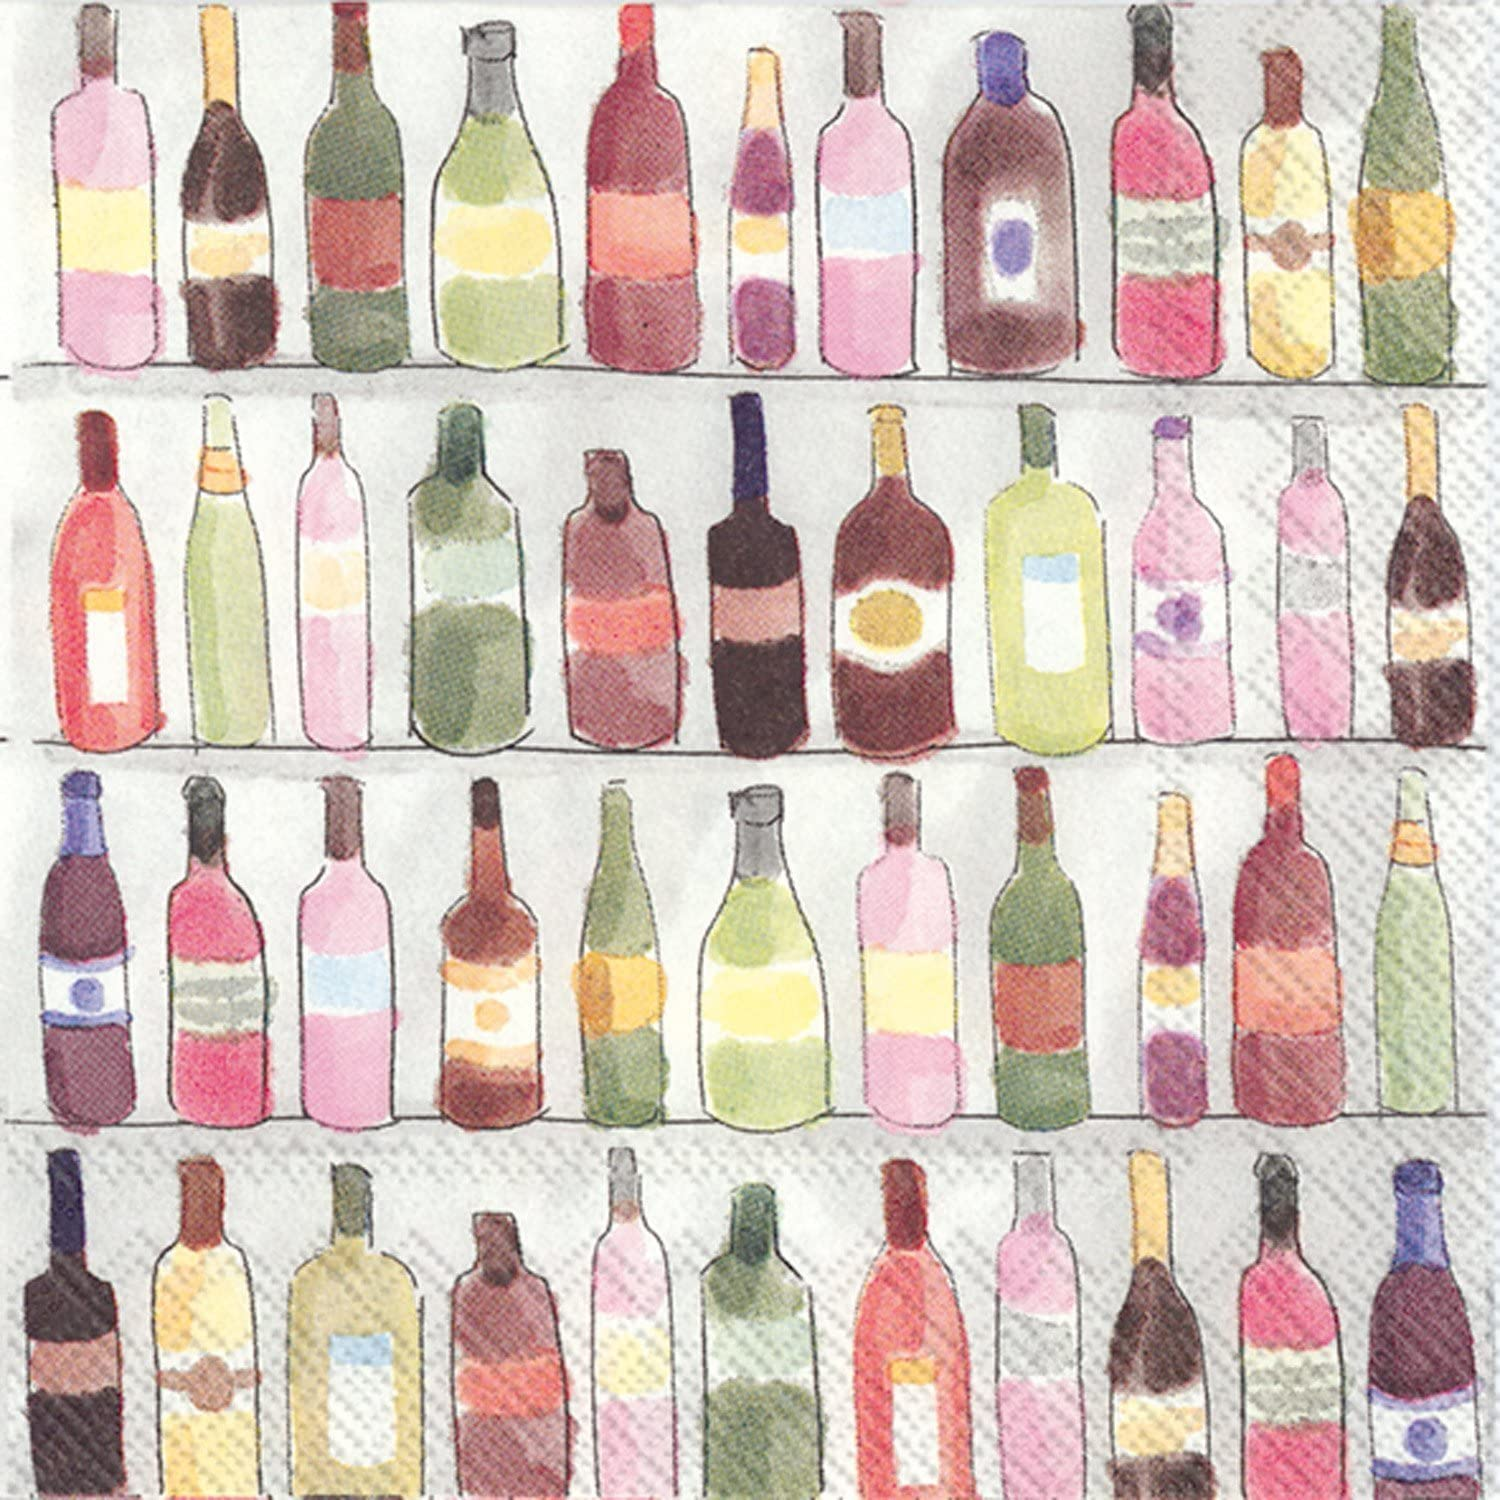 Celebrate the Home Watercolor 3-Ply Paper Cocktail Napkins, Wine Shelves, 20 Count